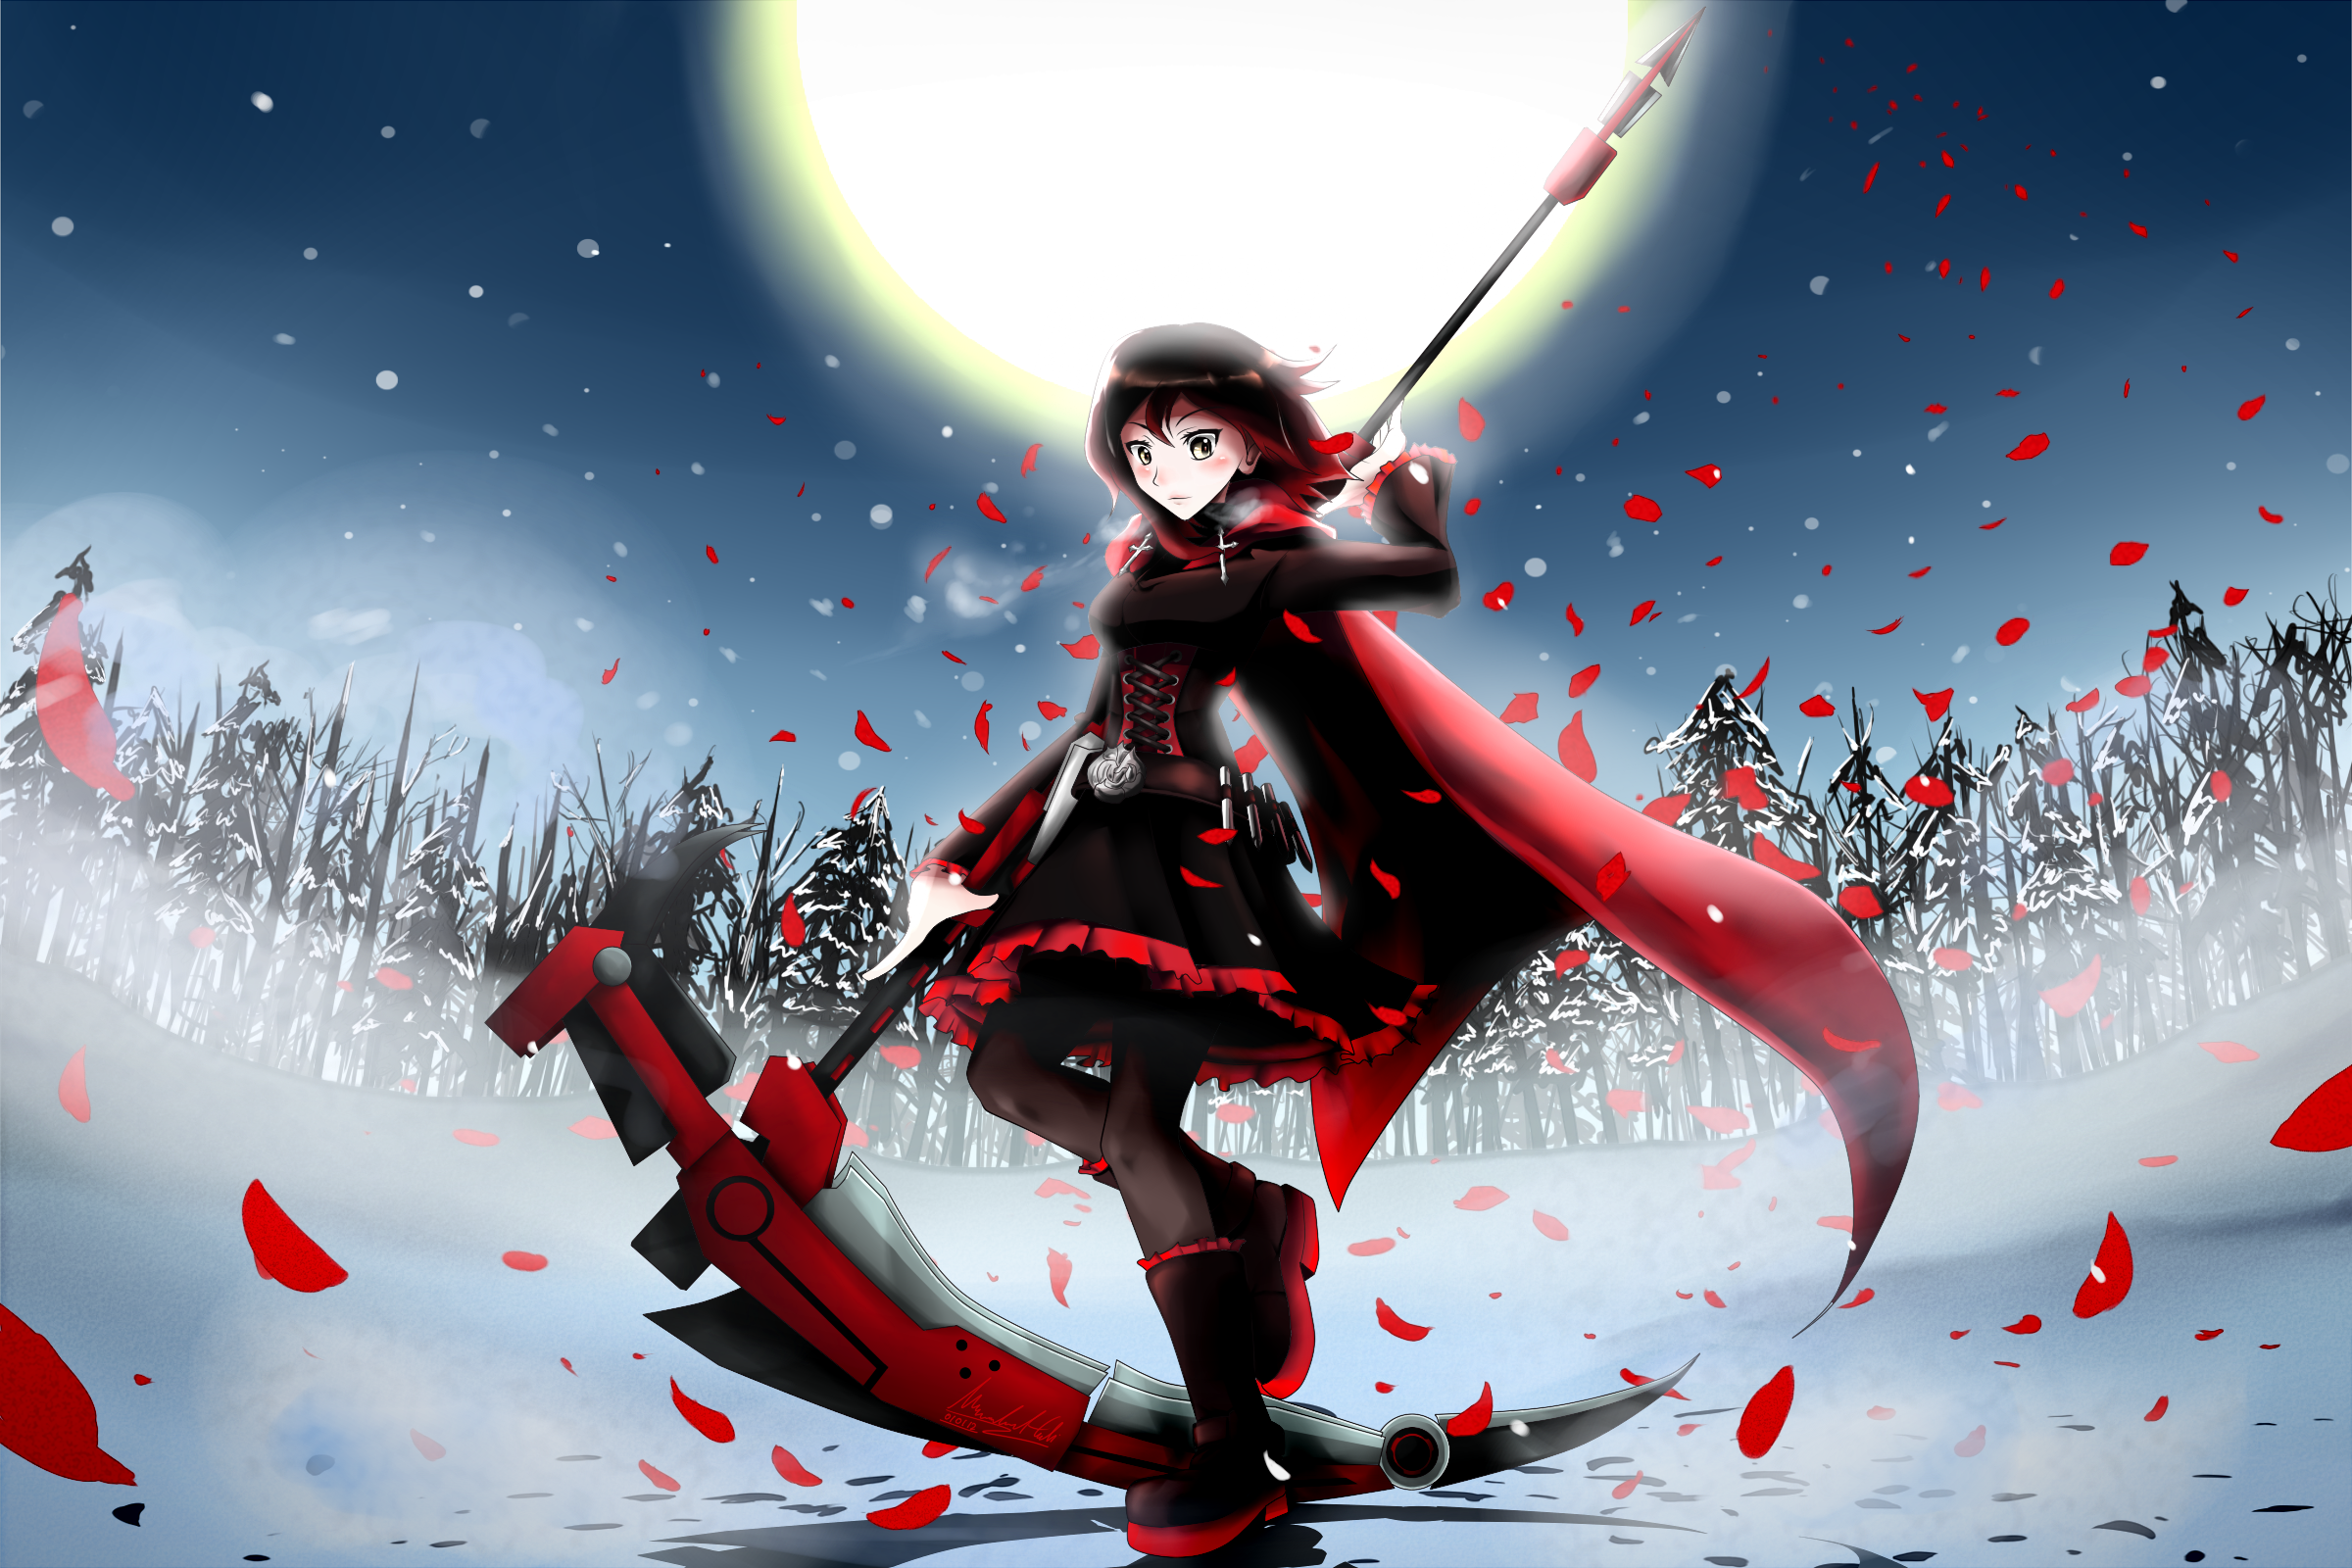 Anime wallpapers for xbox one wallpapersafari - Xbox anime gamer pictures ...